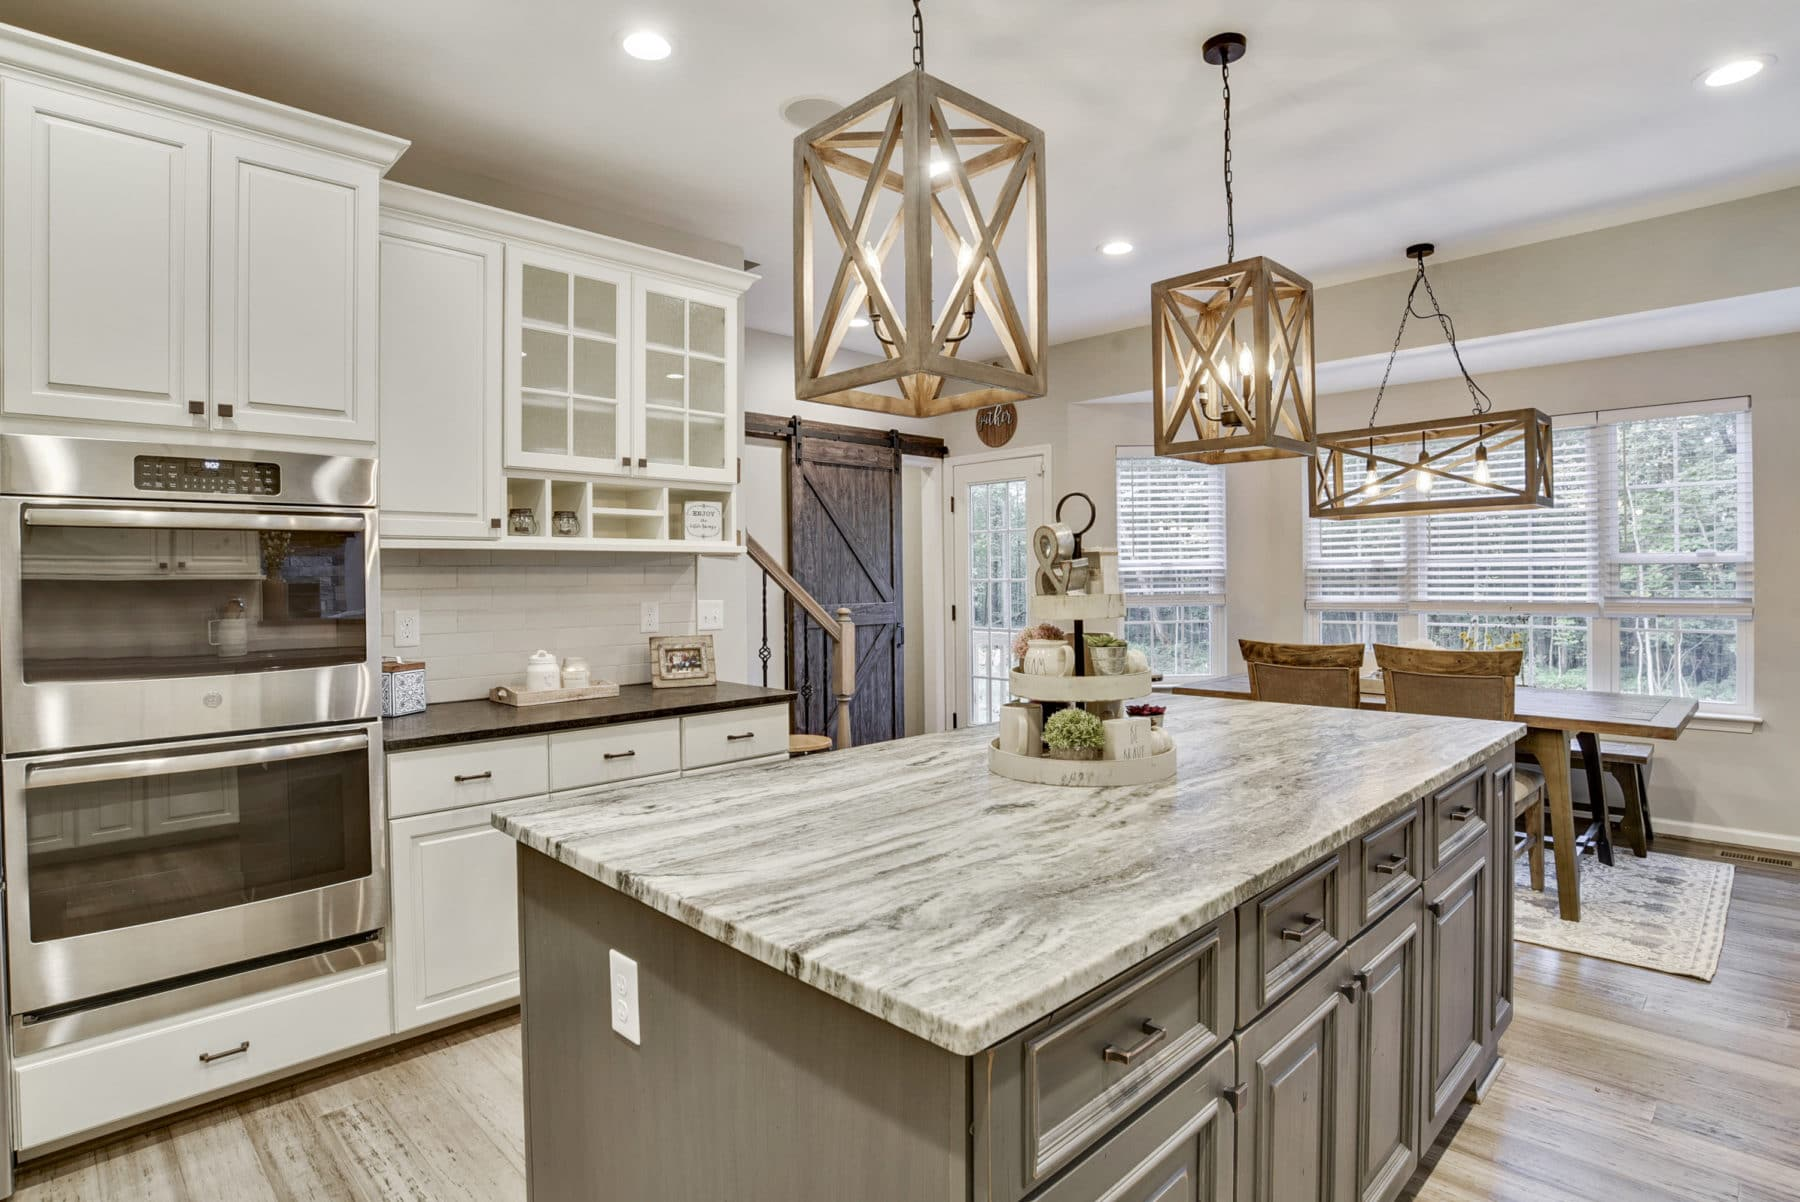 - Get The Look Of A Craftsman Style Kitchen! - Bianco Renovations